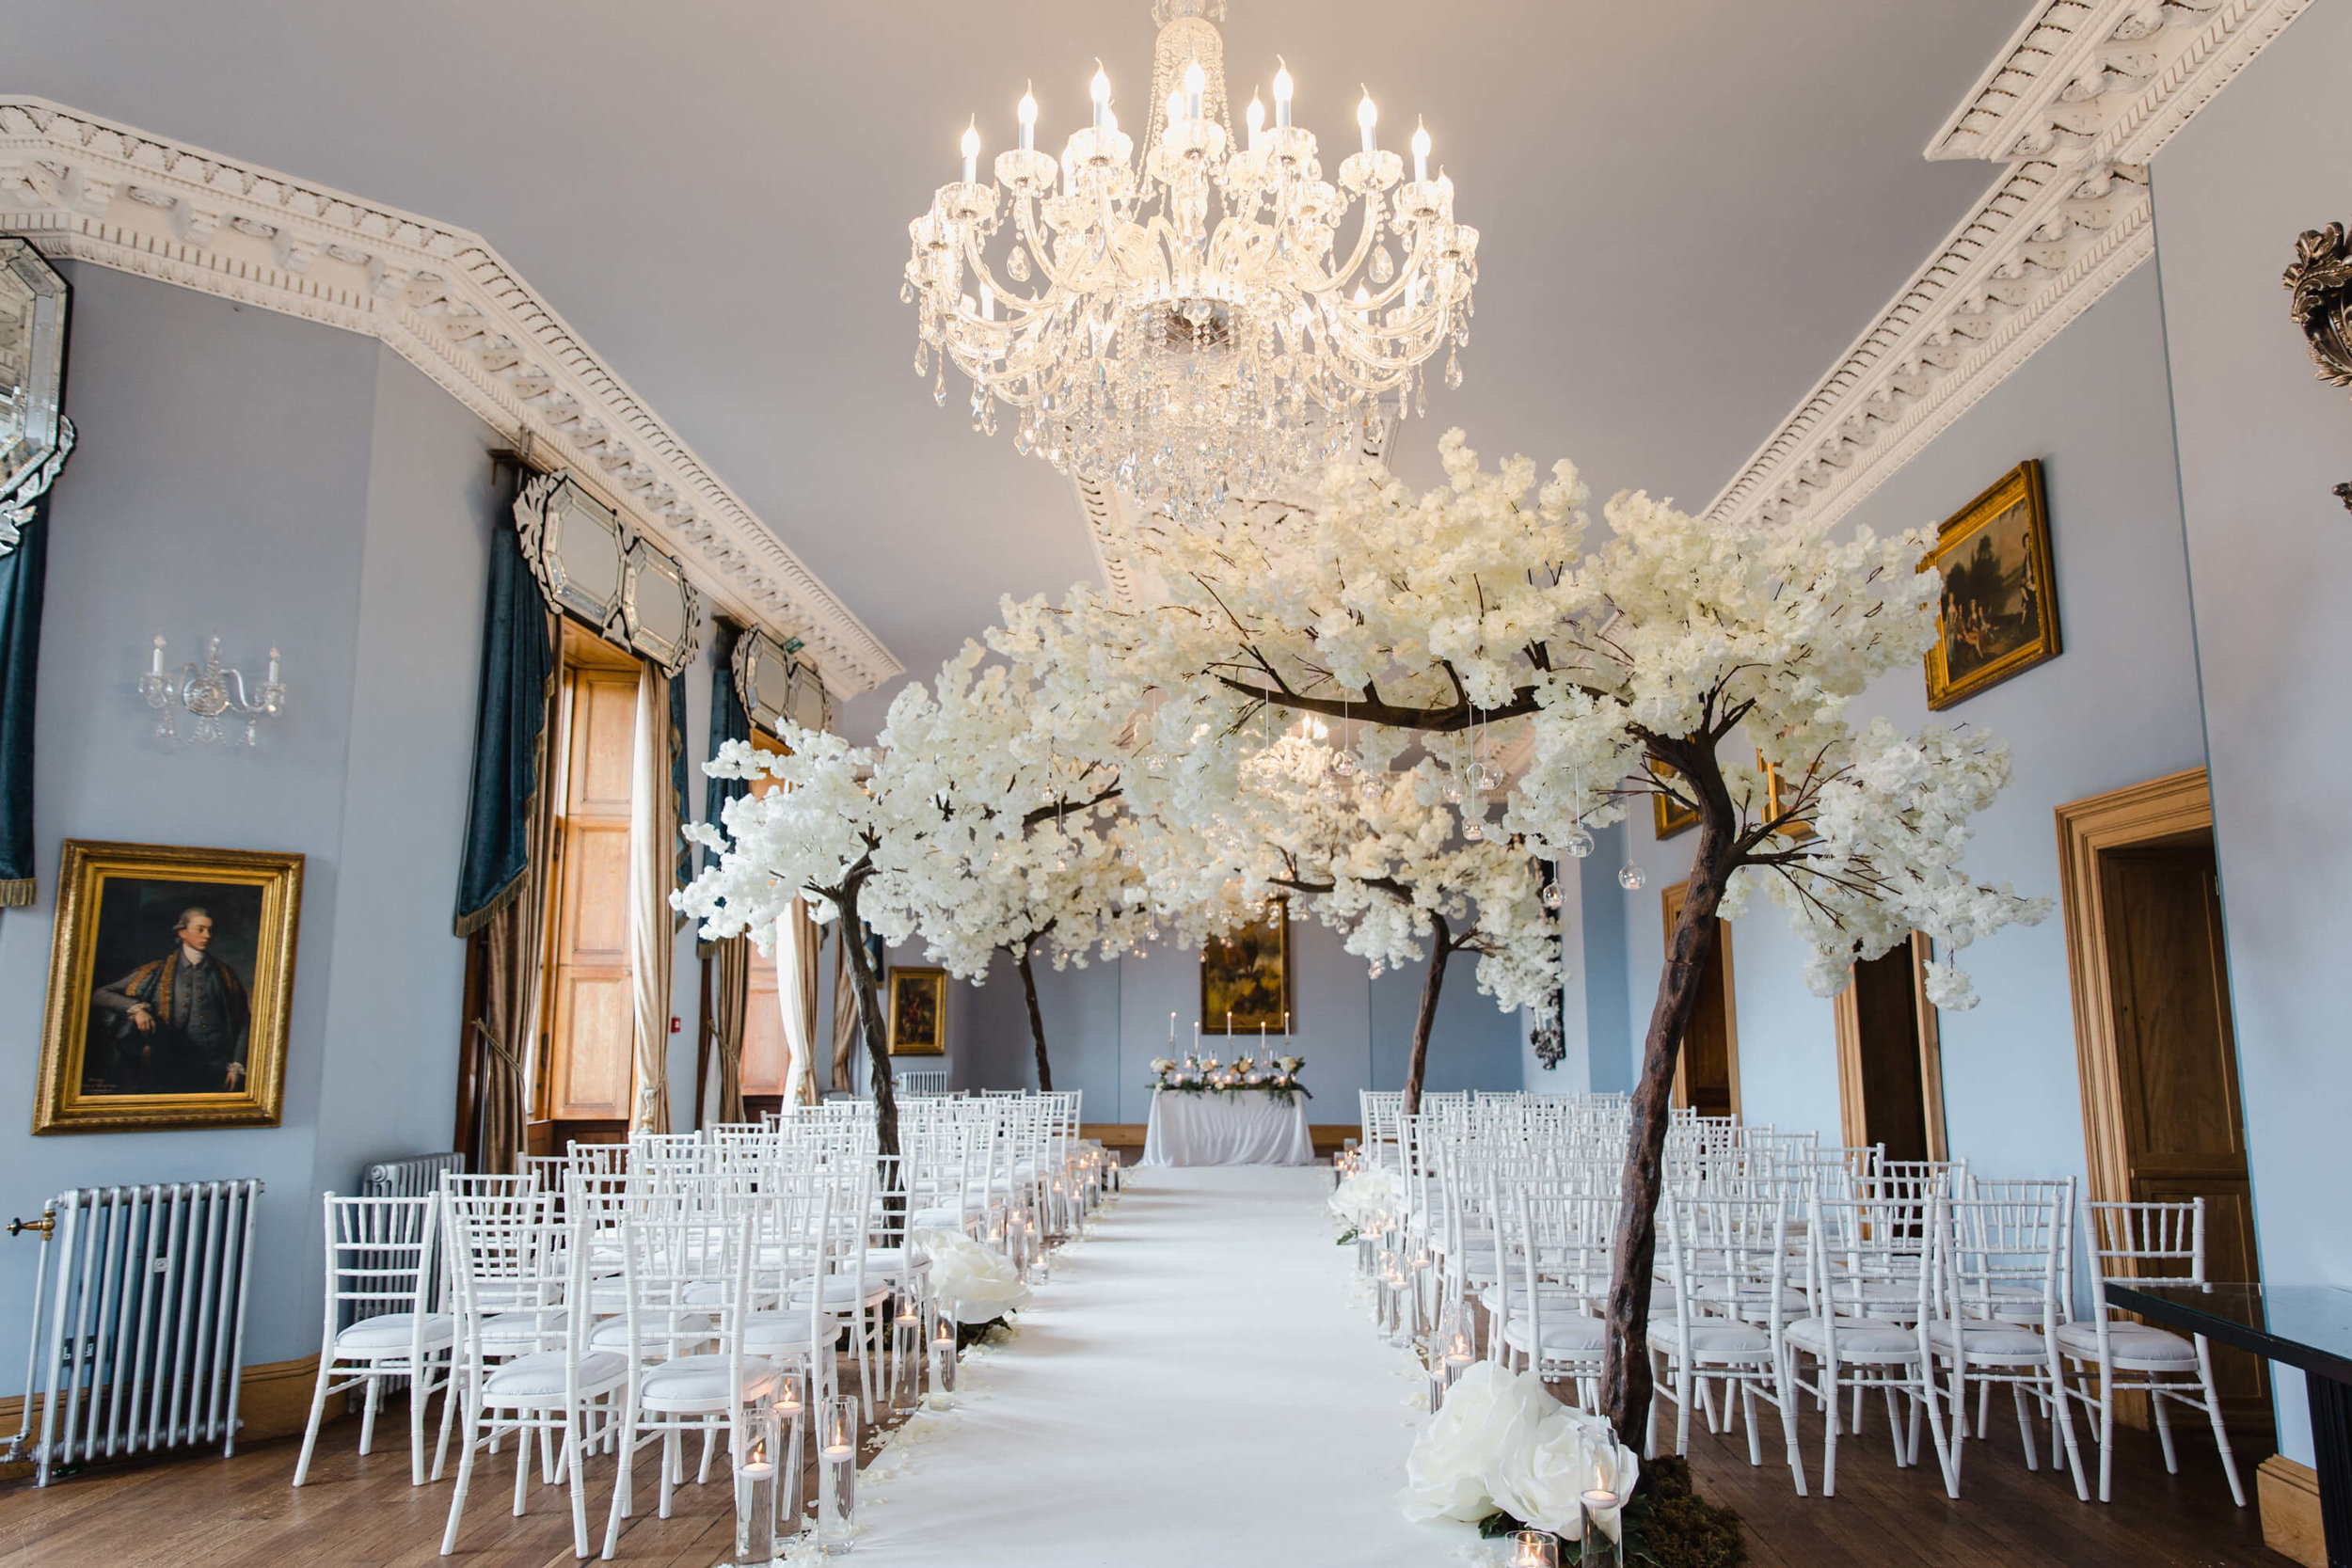 wedding ceremony aisle dressed with blossom trees by kelly louise floral artistry